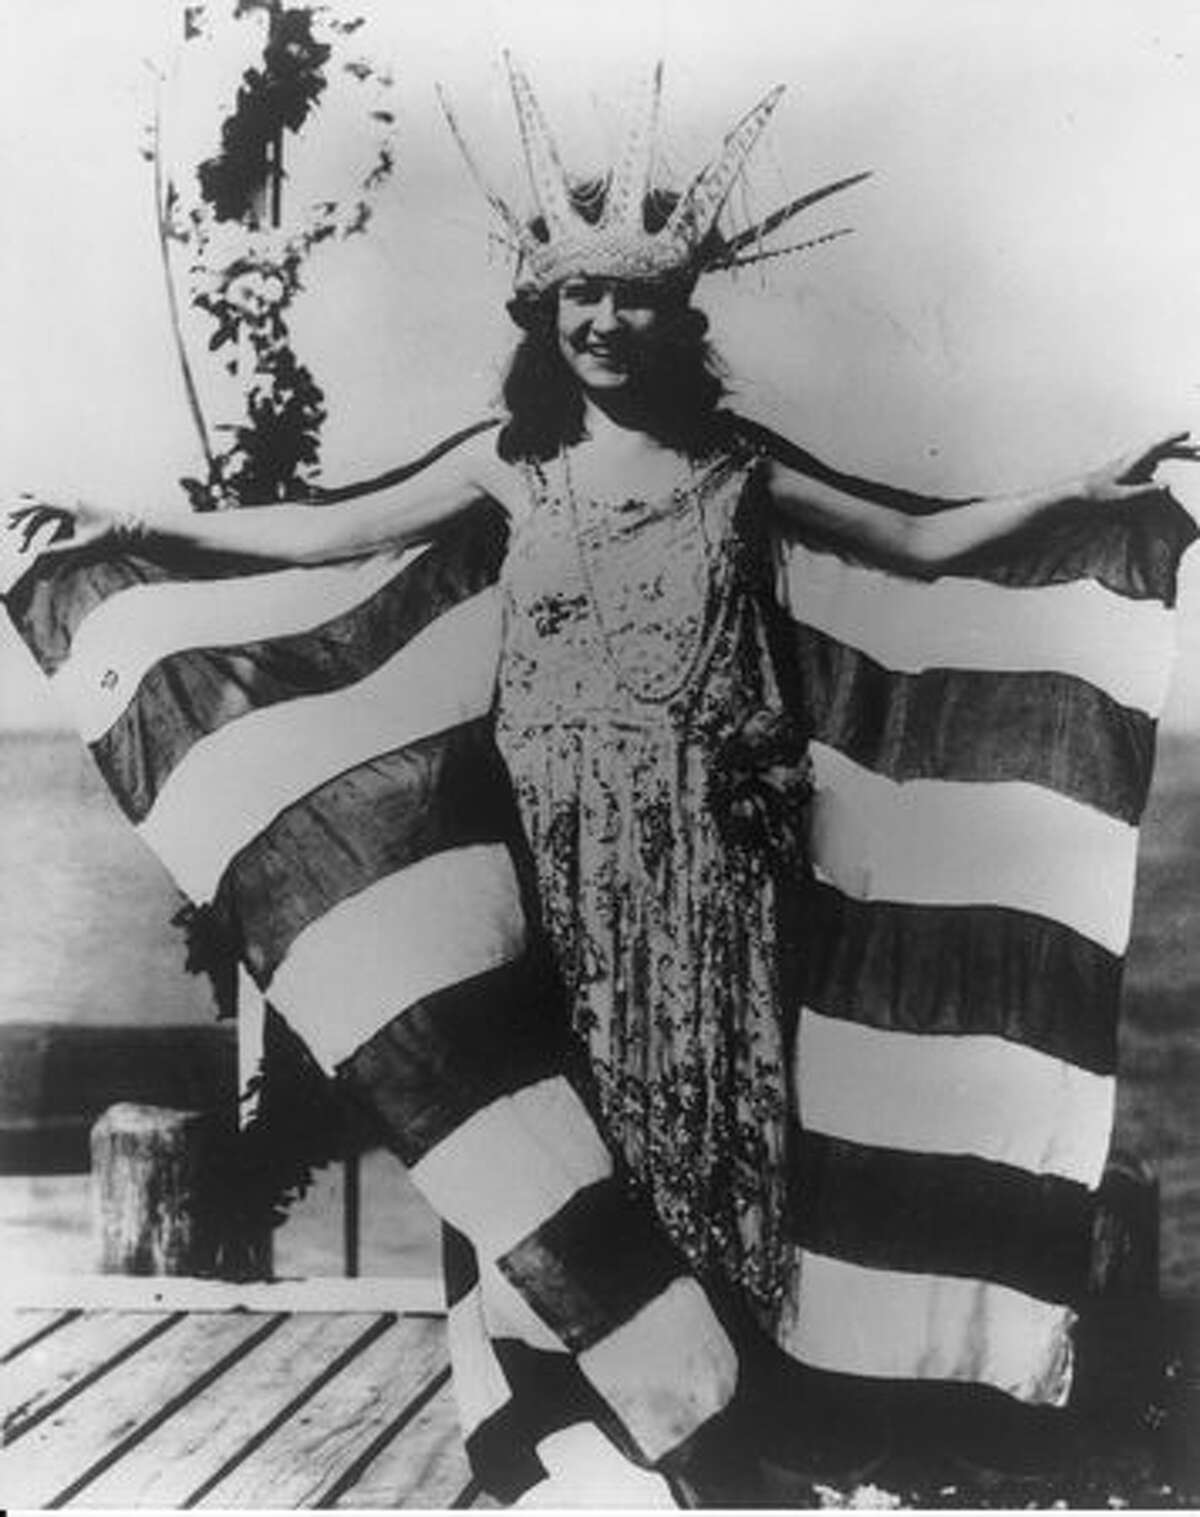 Miss America winners from 1921 to today 1921: Margaret Gorman, District of Columbia. Gorman was just a junior in high school when she entered the